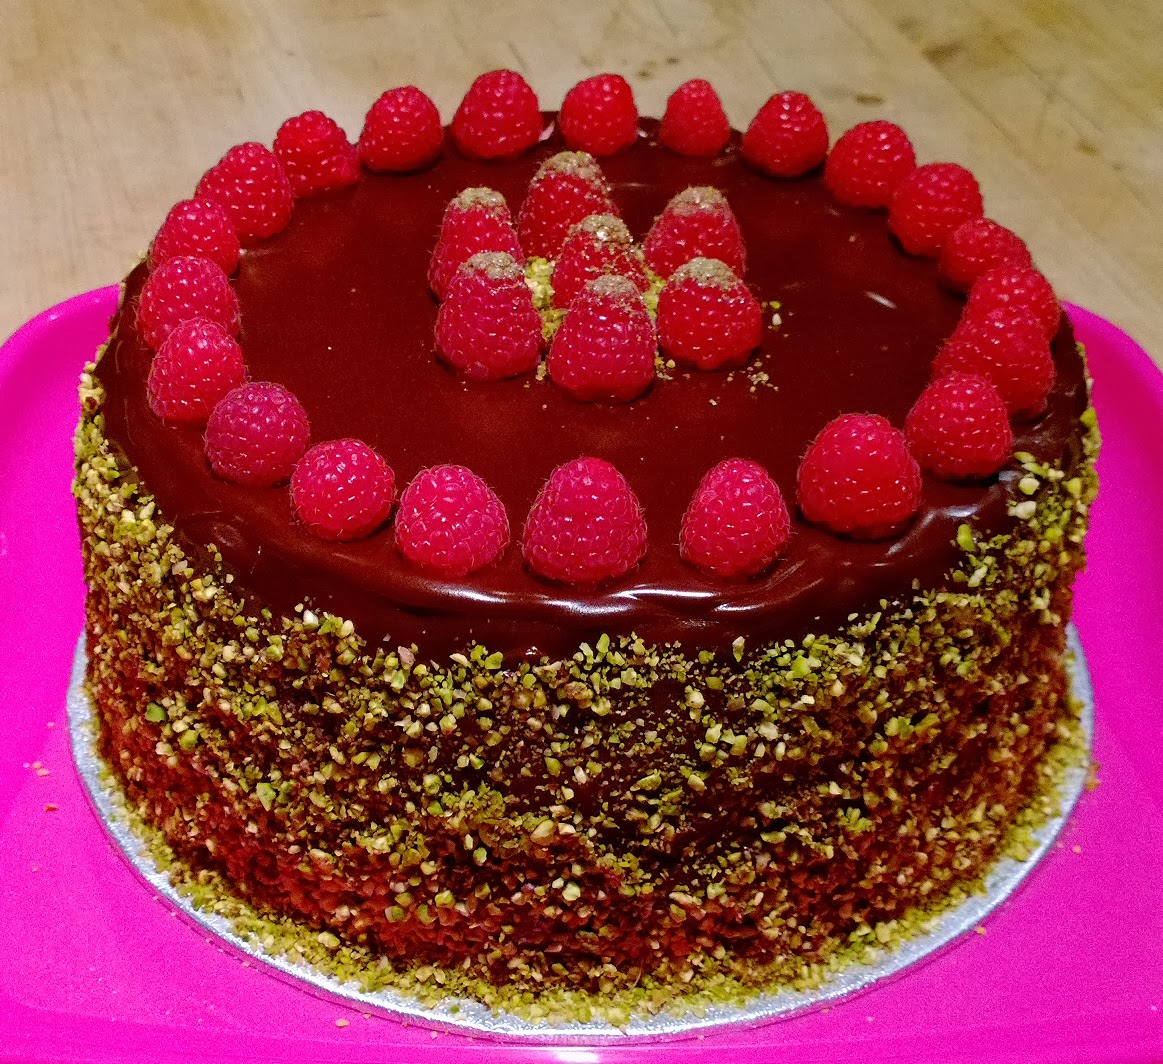 Charlie makes cakes: Pistachio, chocolate and raspberry layer cake